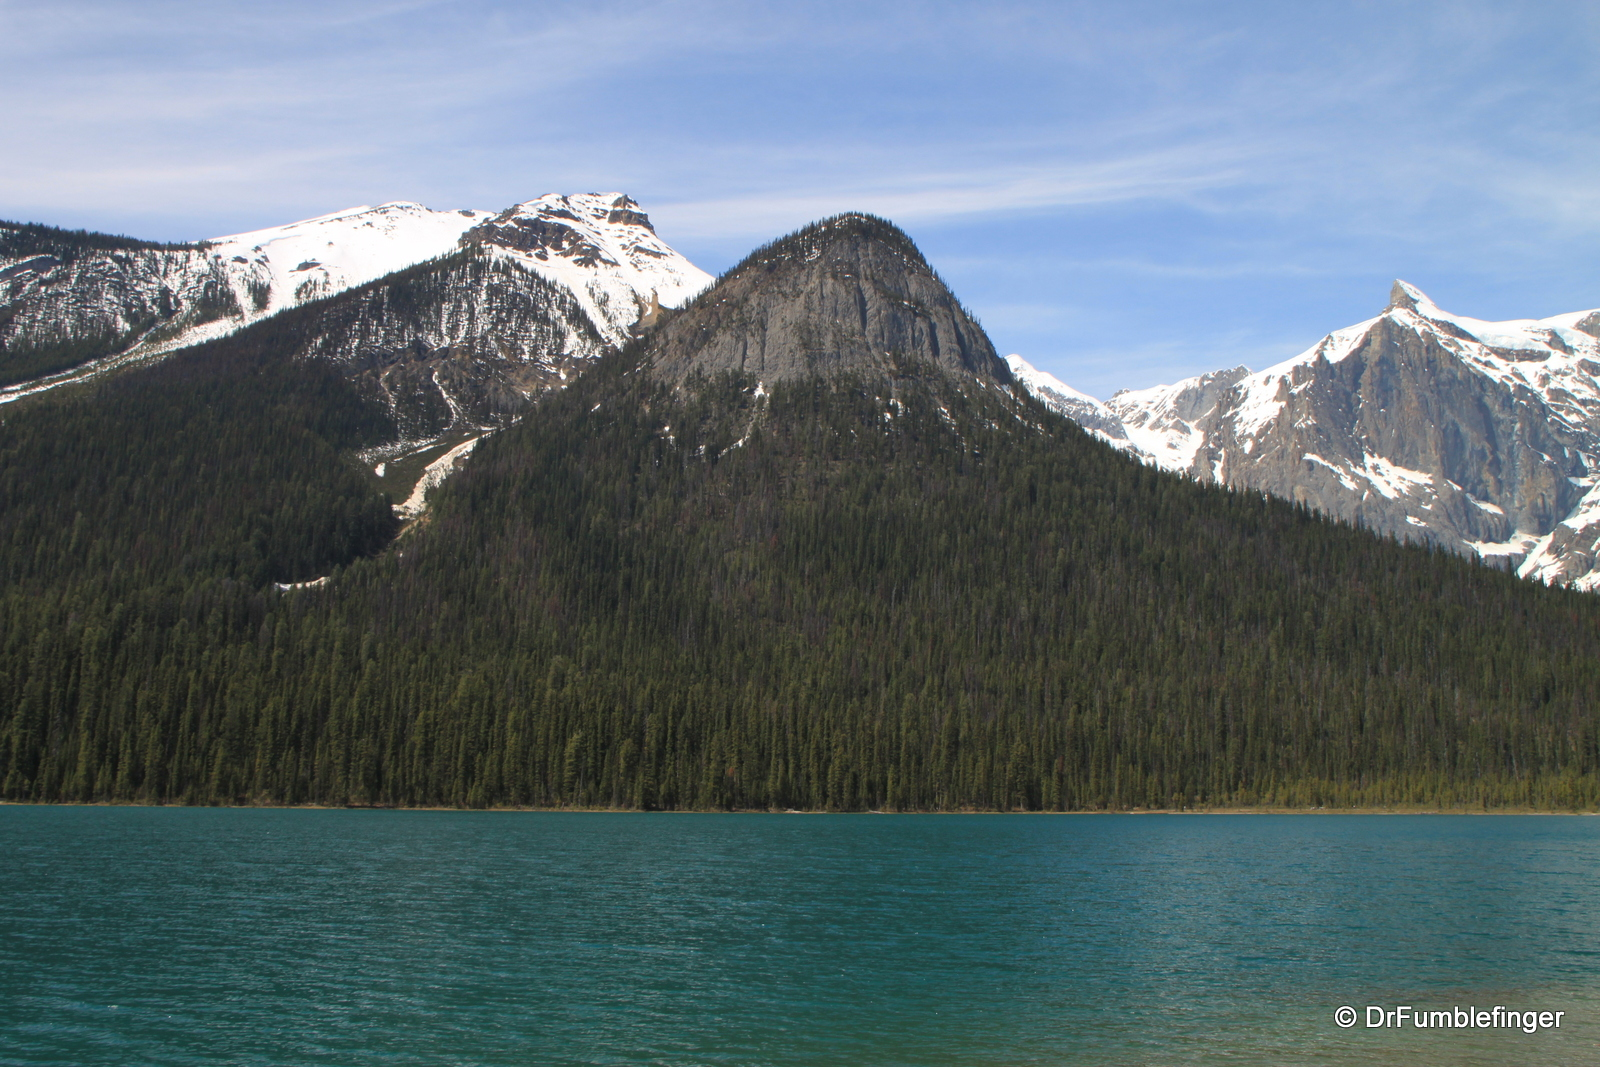 Emerald Lake, view of West Shore